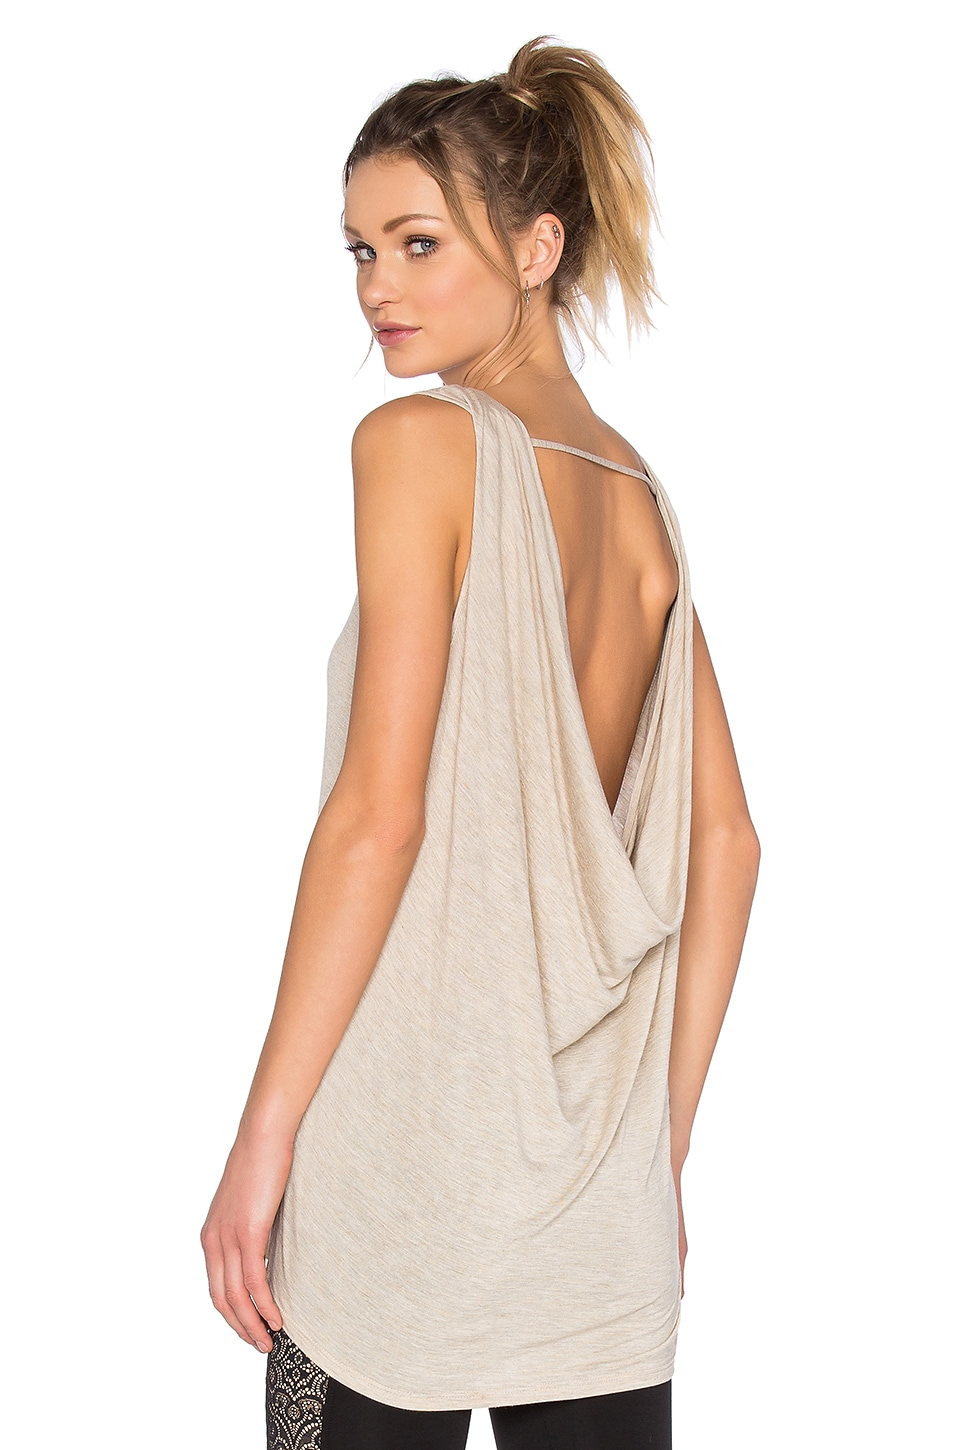 Blue Life Fit Cowl Tank in Oatmeal